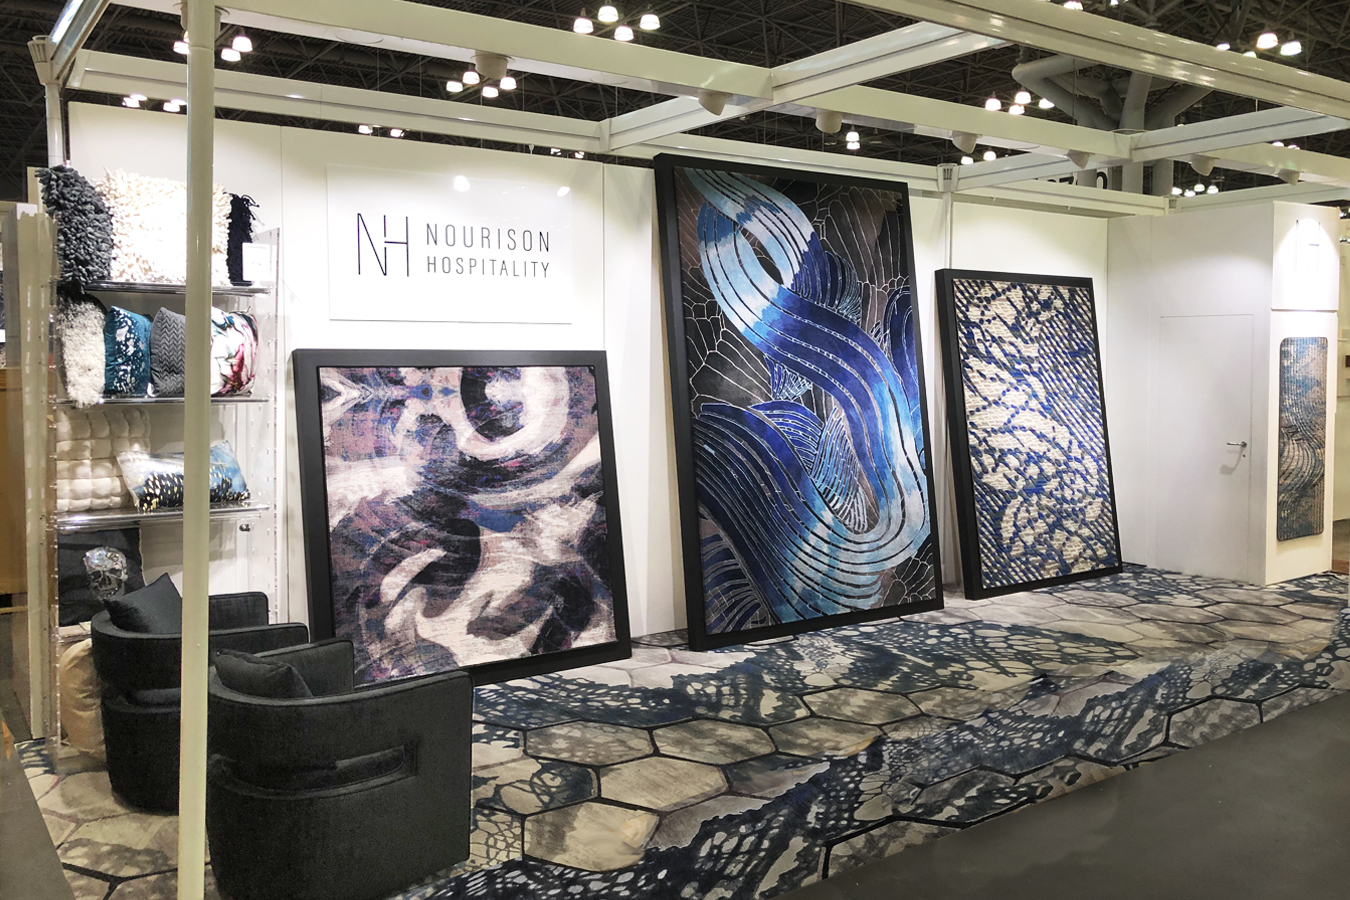 Nourison Hospitality booth